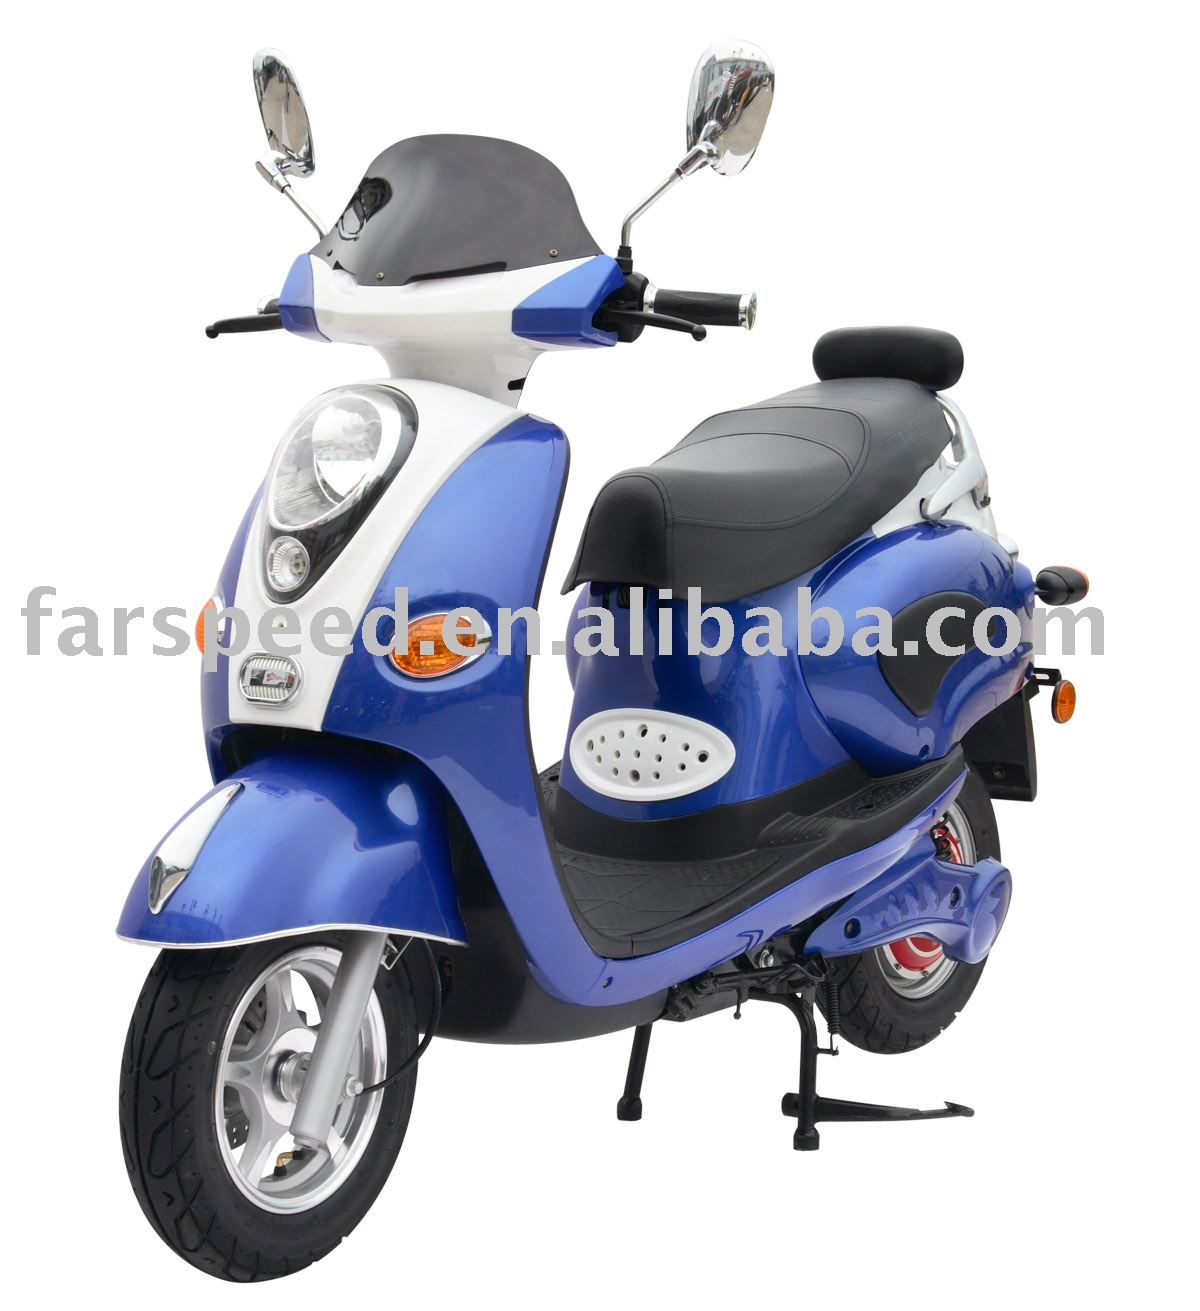 1500w EEC electric scooter,electric motorcycle,scooter,electric bike (FPS-Z1500E)